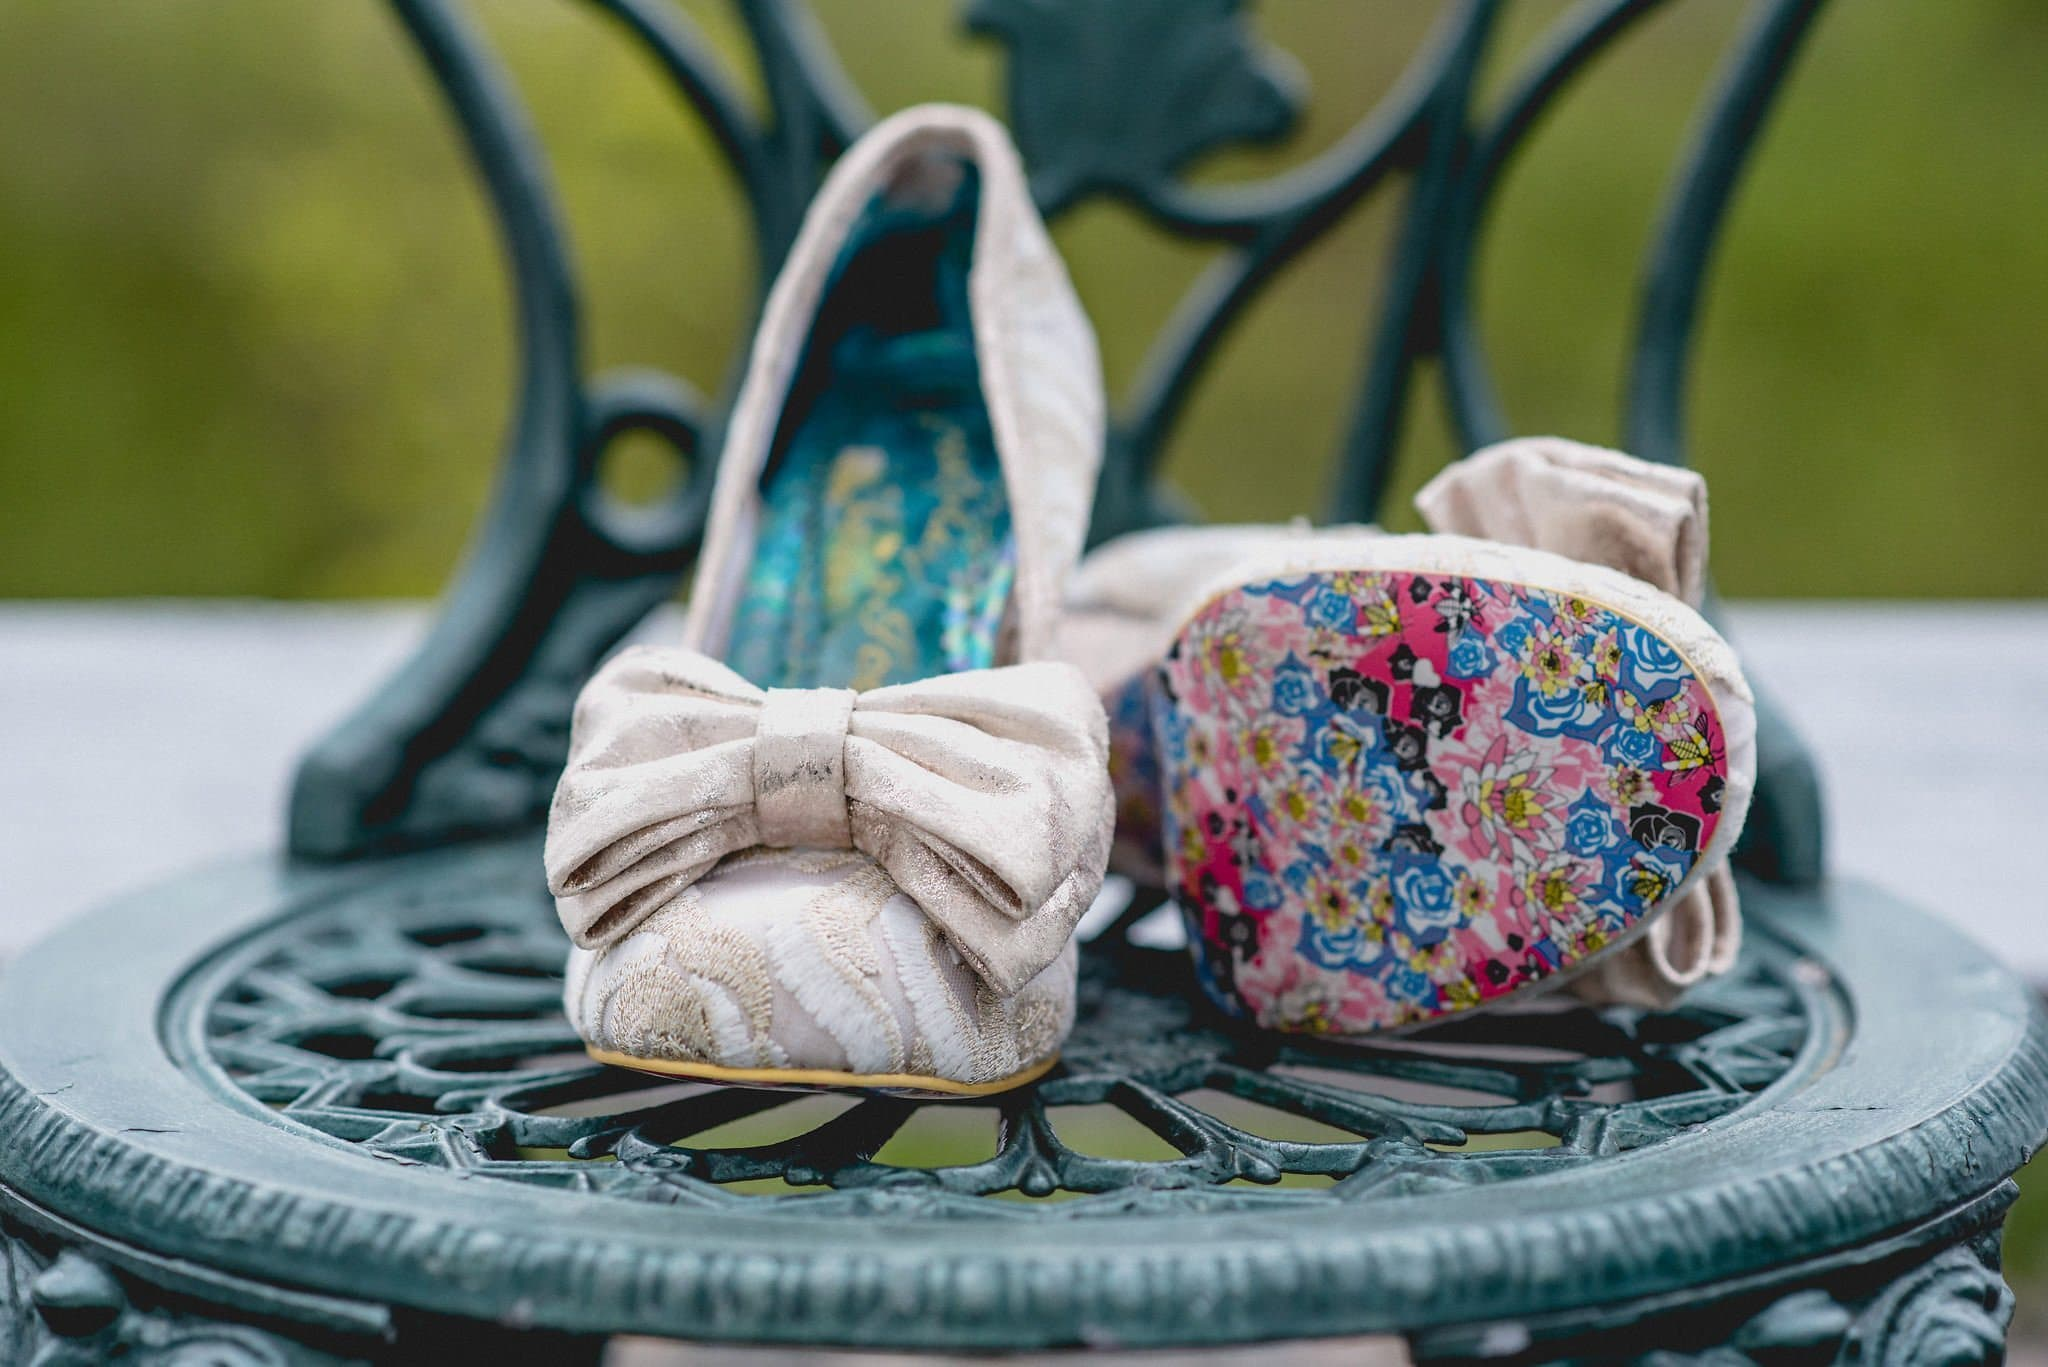 Velvet Irregular Choice shoes with a bow and painted floral soles are pictured on a metal filigree chair